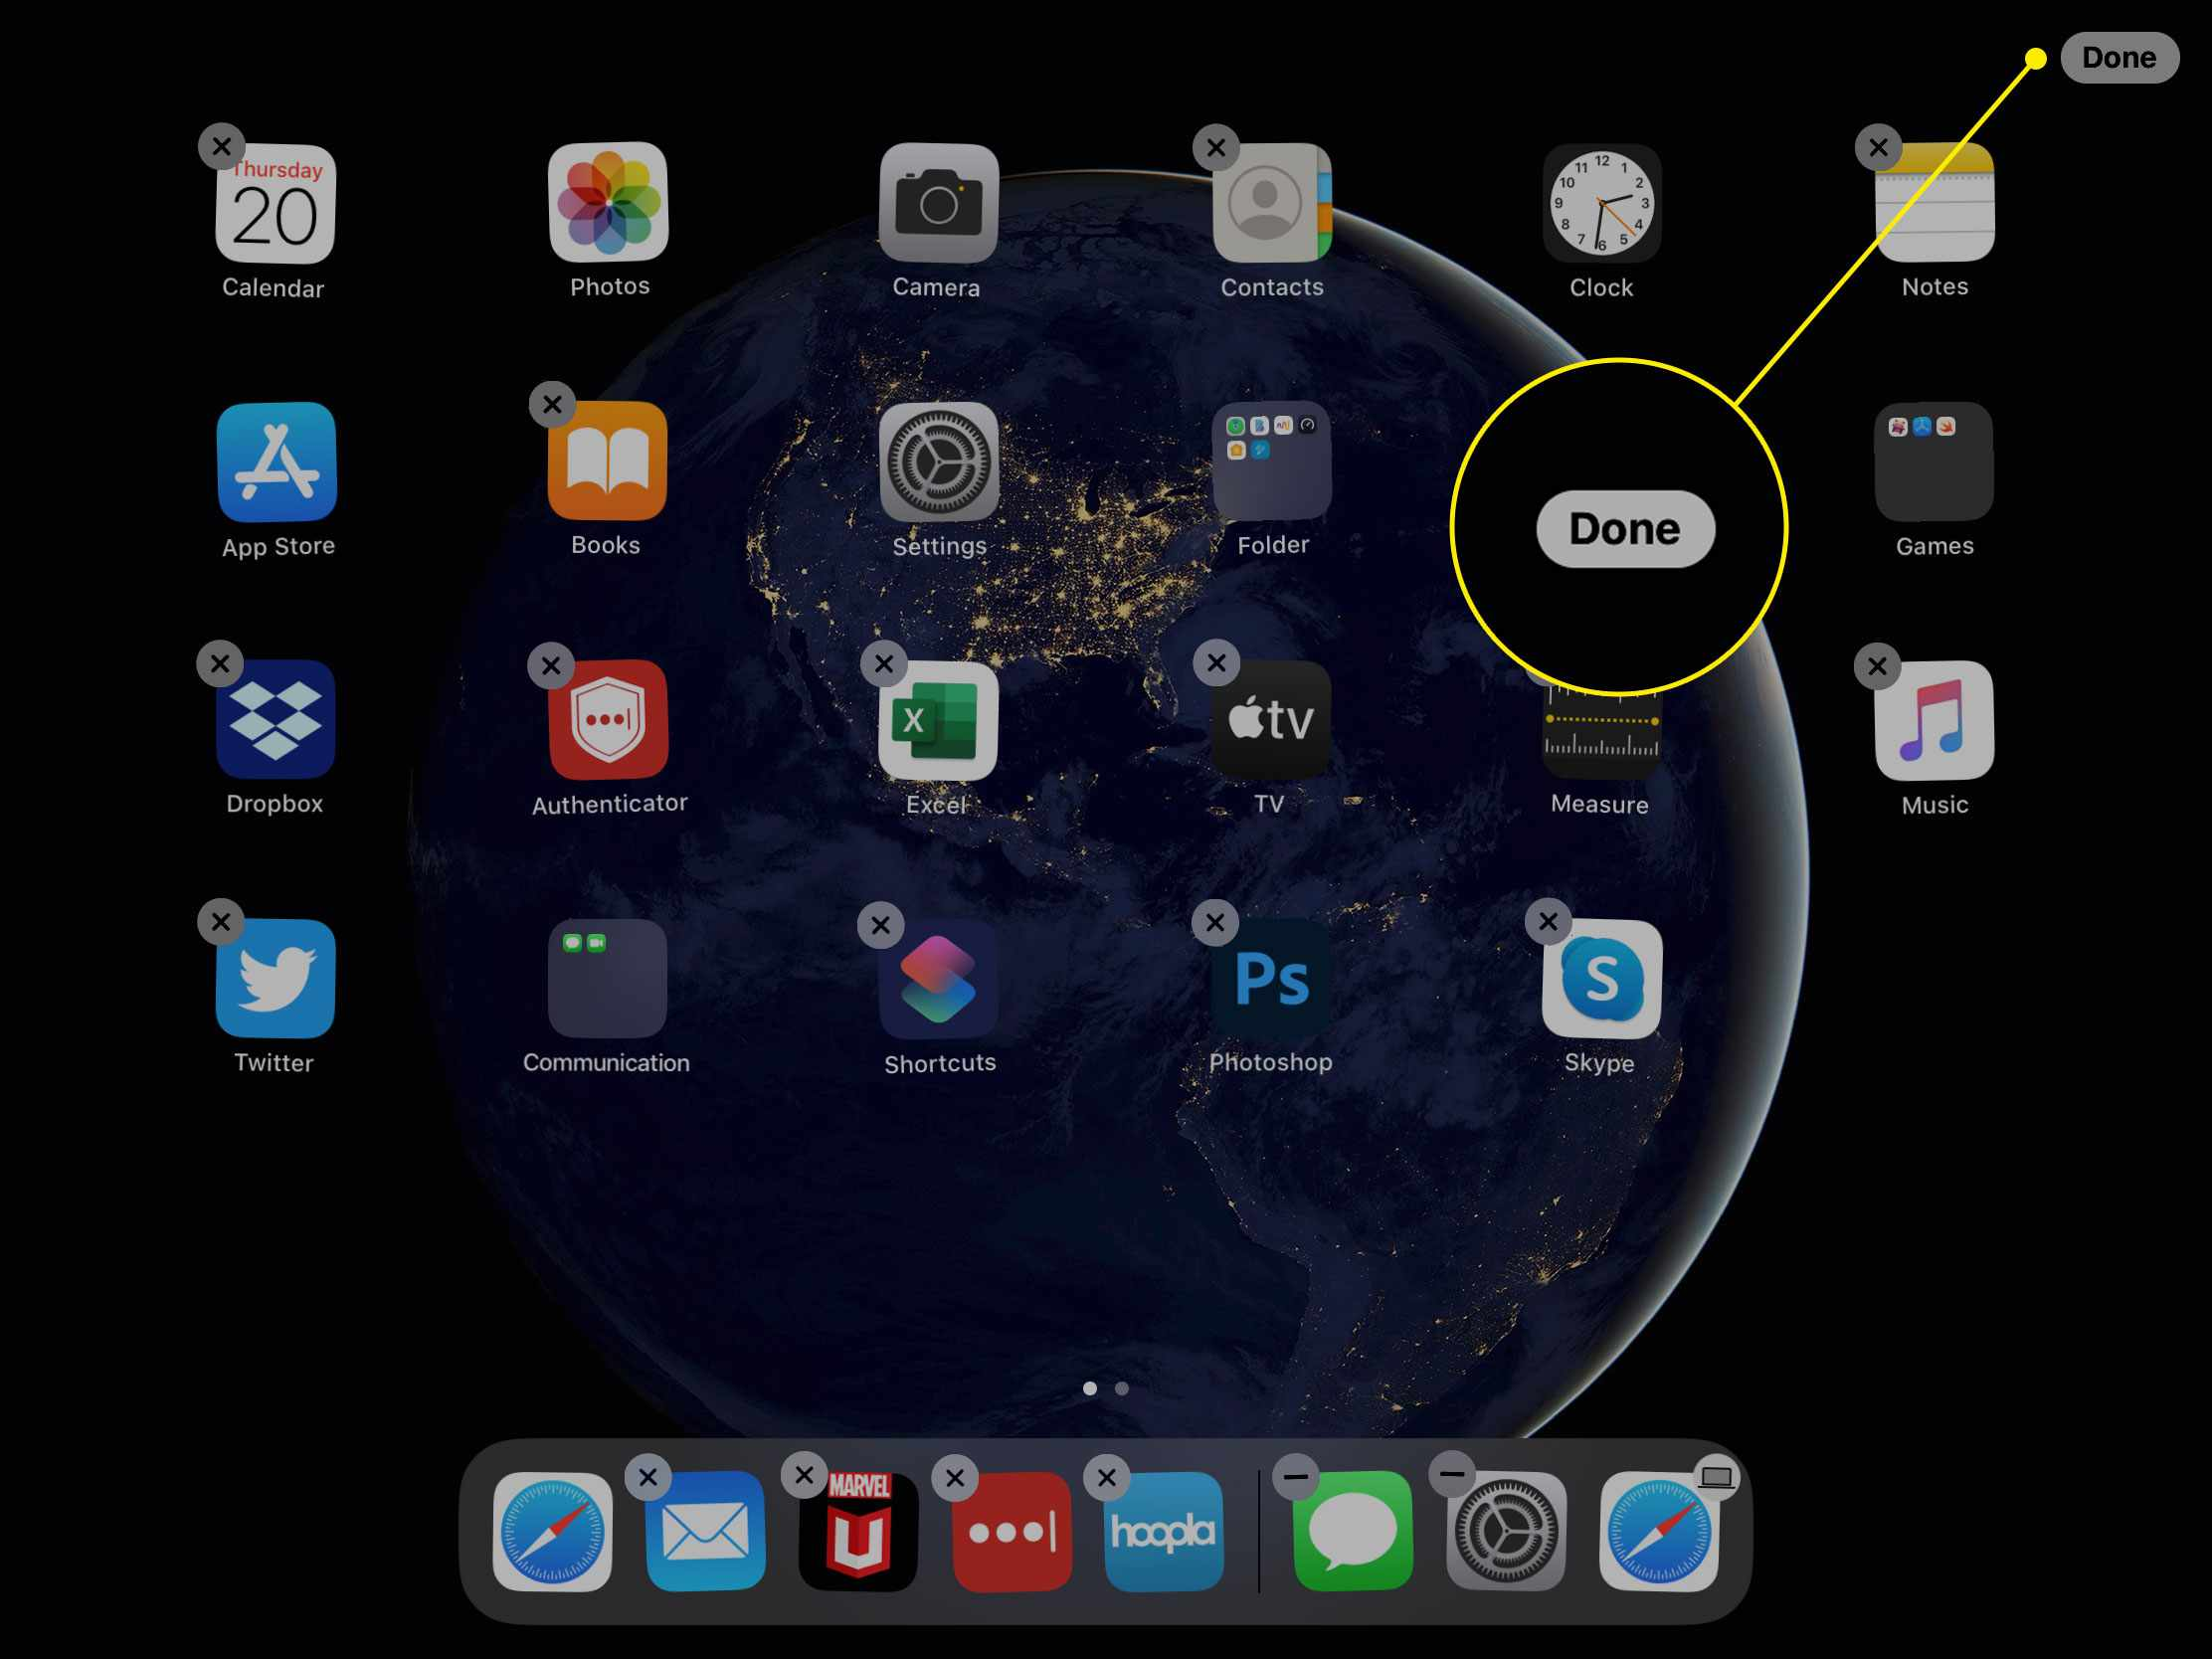 The Done button for organizing the home screen on an iPad